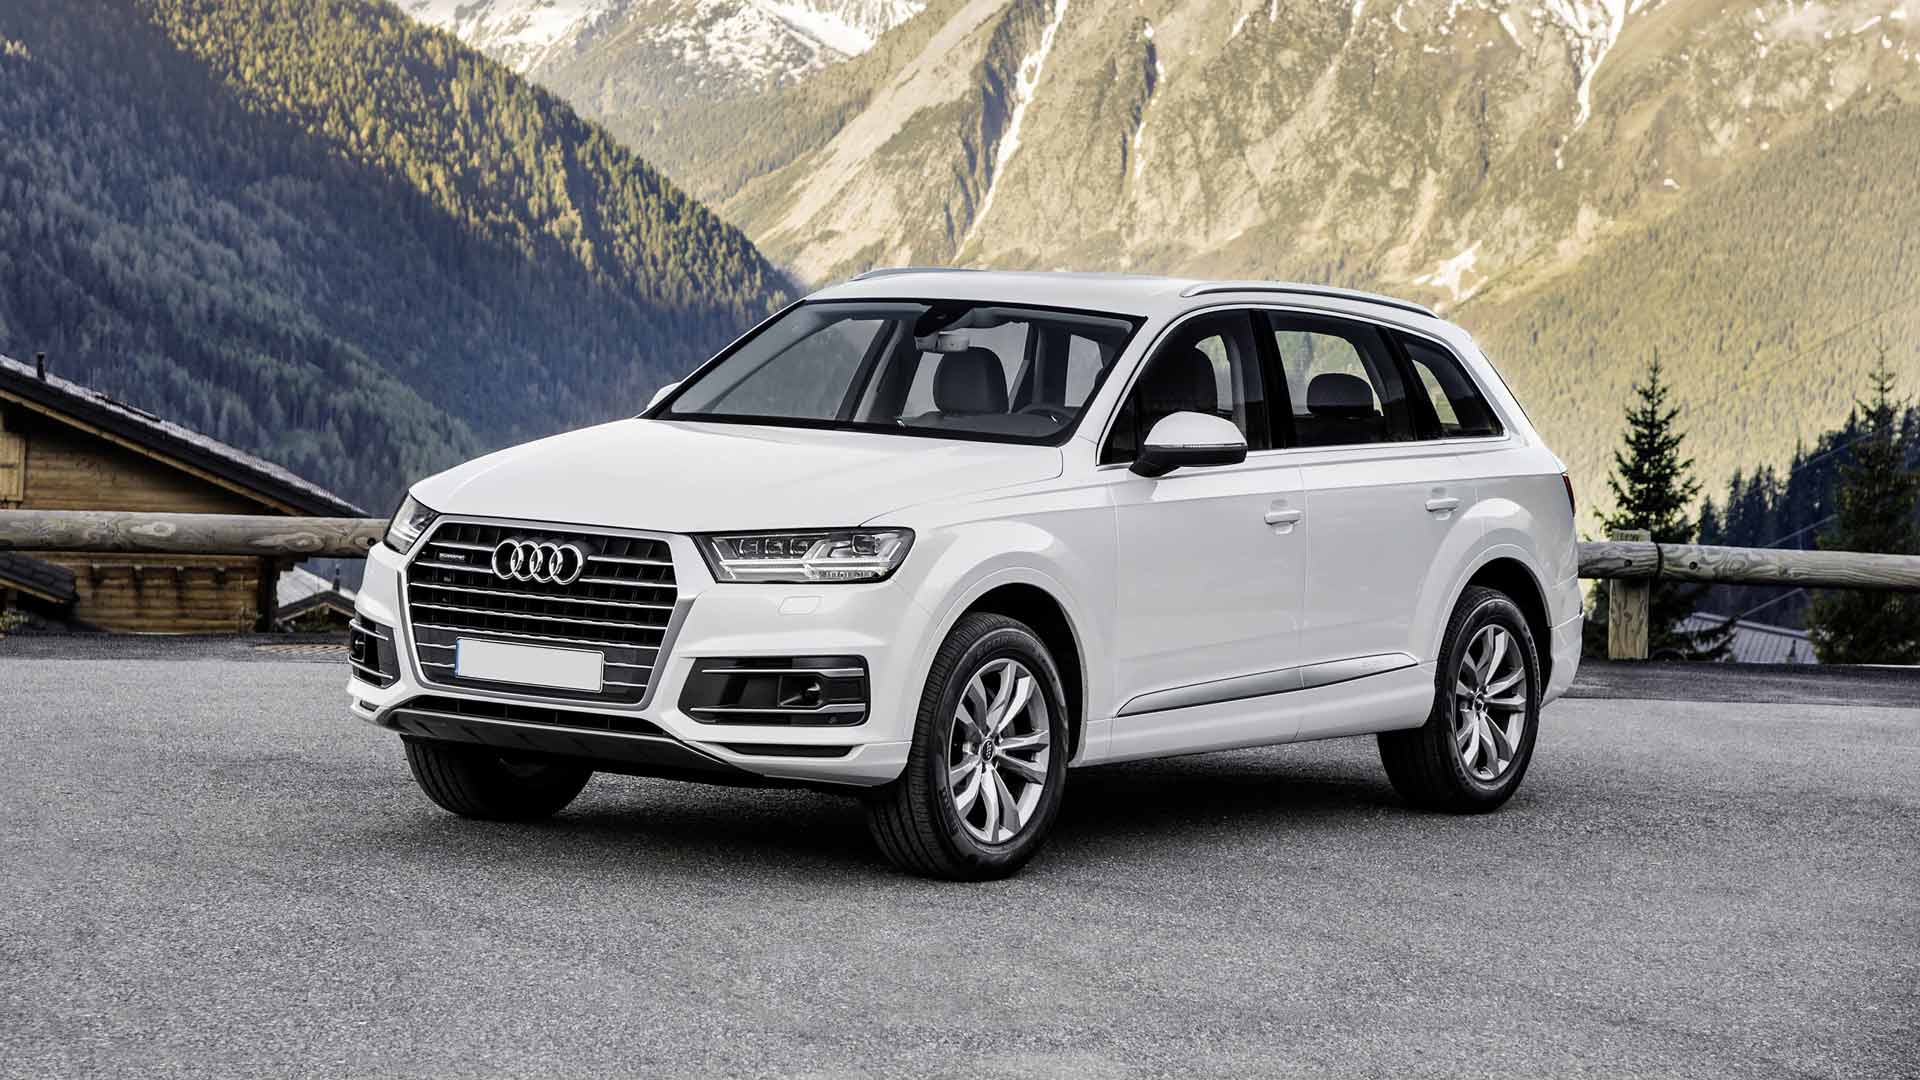 Used 7 Seater Cars For Sale Best Family Transport Options 2019